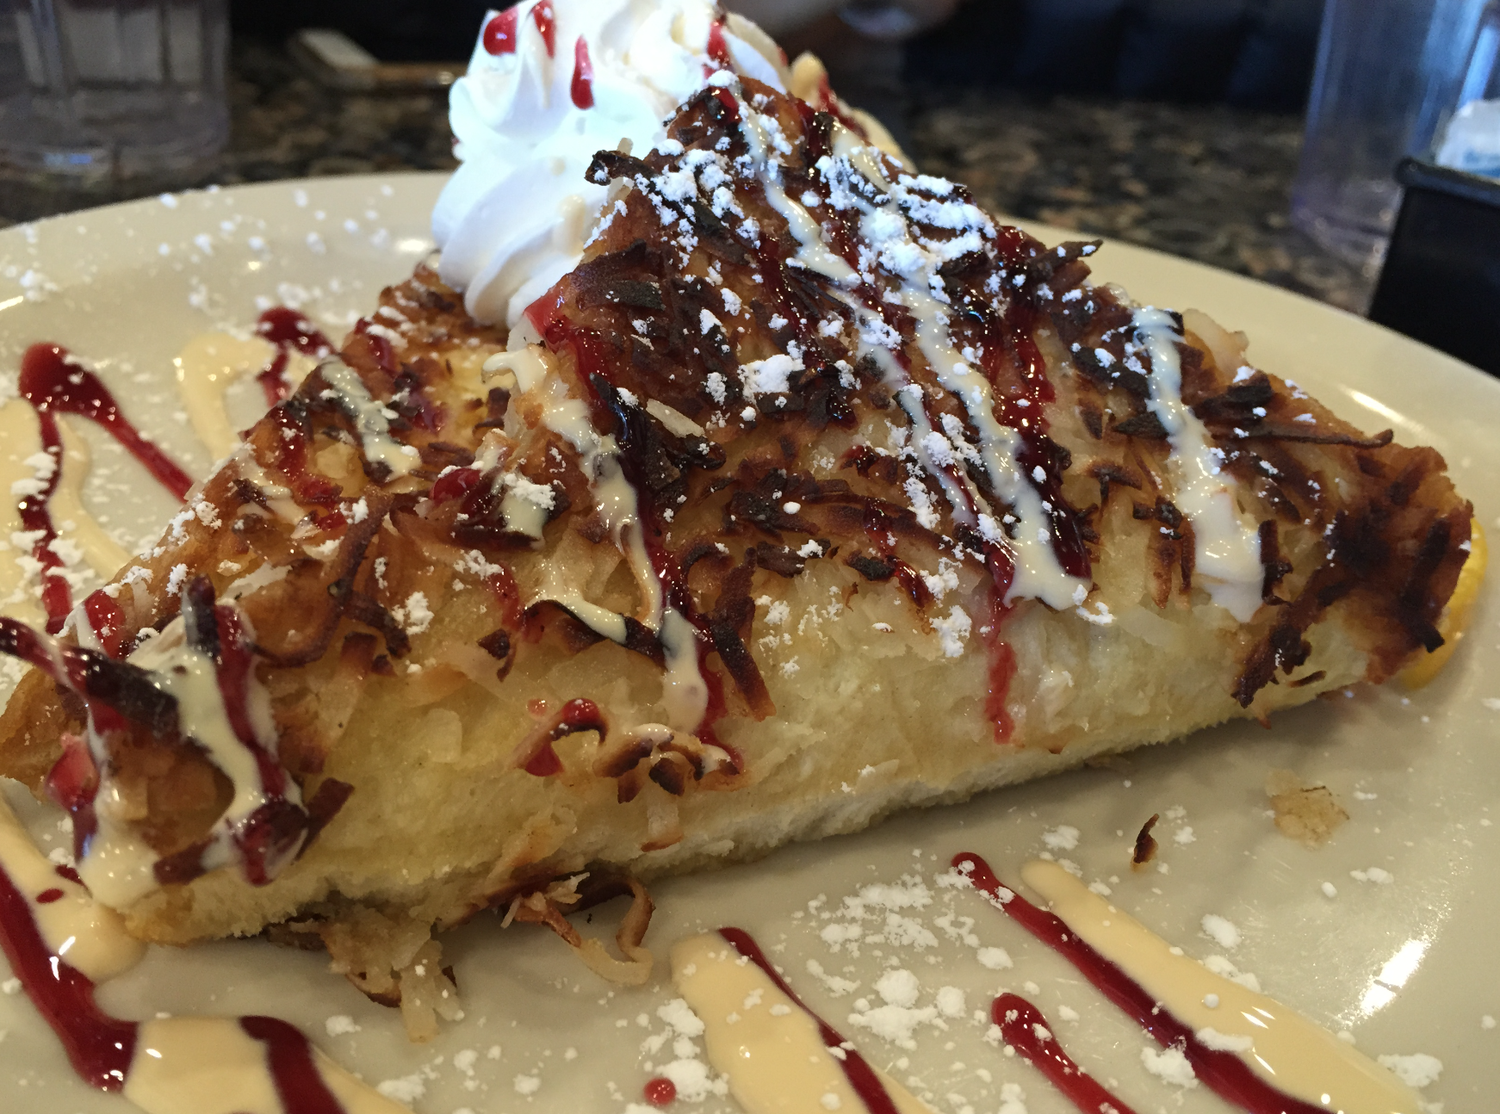 The coconut macaroon French Toast we cannot stop dreaming about.